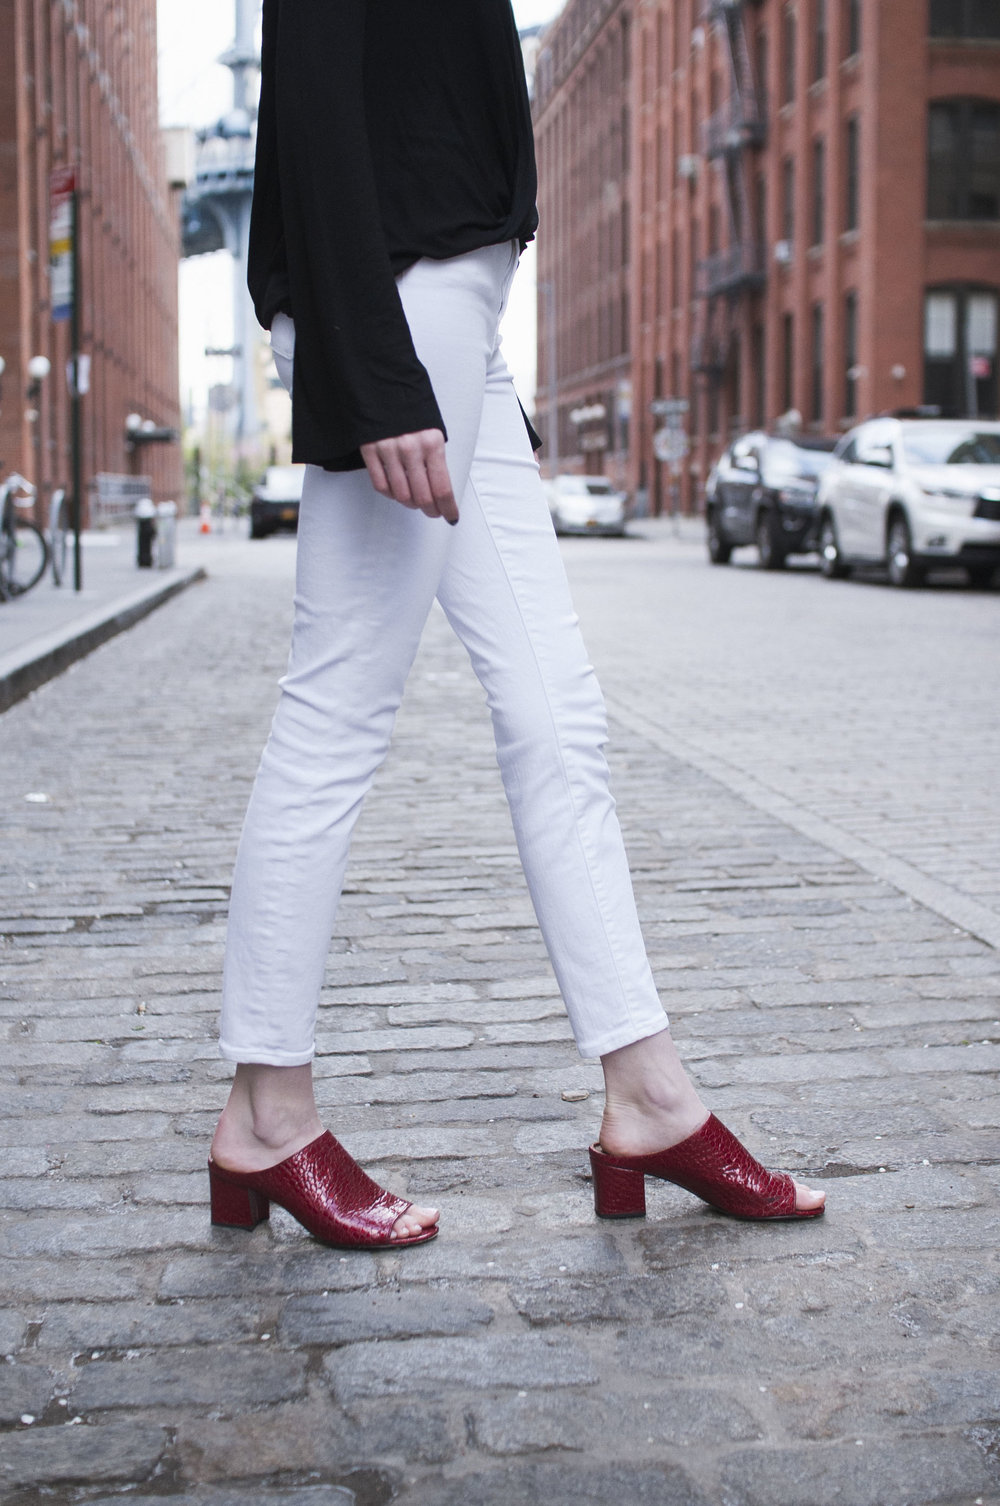 Donald J Pliner red heeled mules, J.Crew high waisted jeans, Tobi surplice top, J.Crew berry print bandana